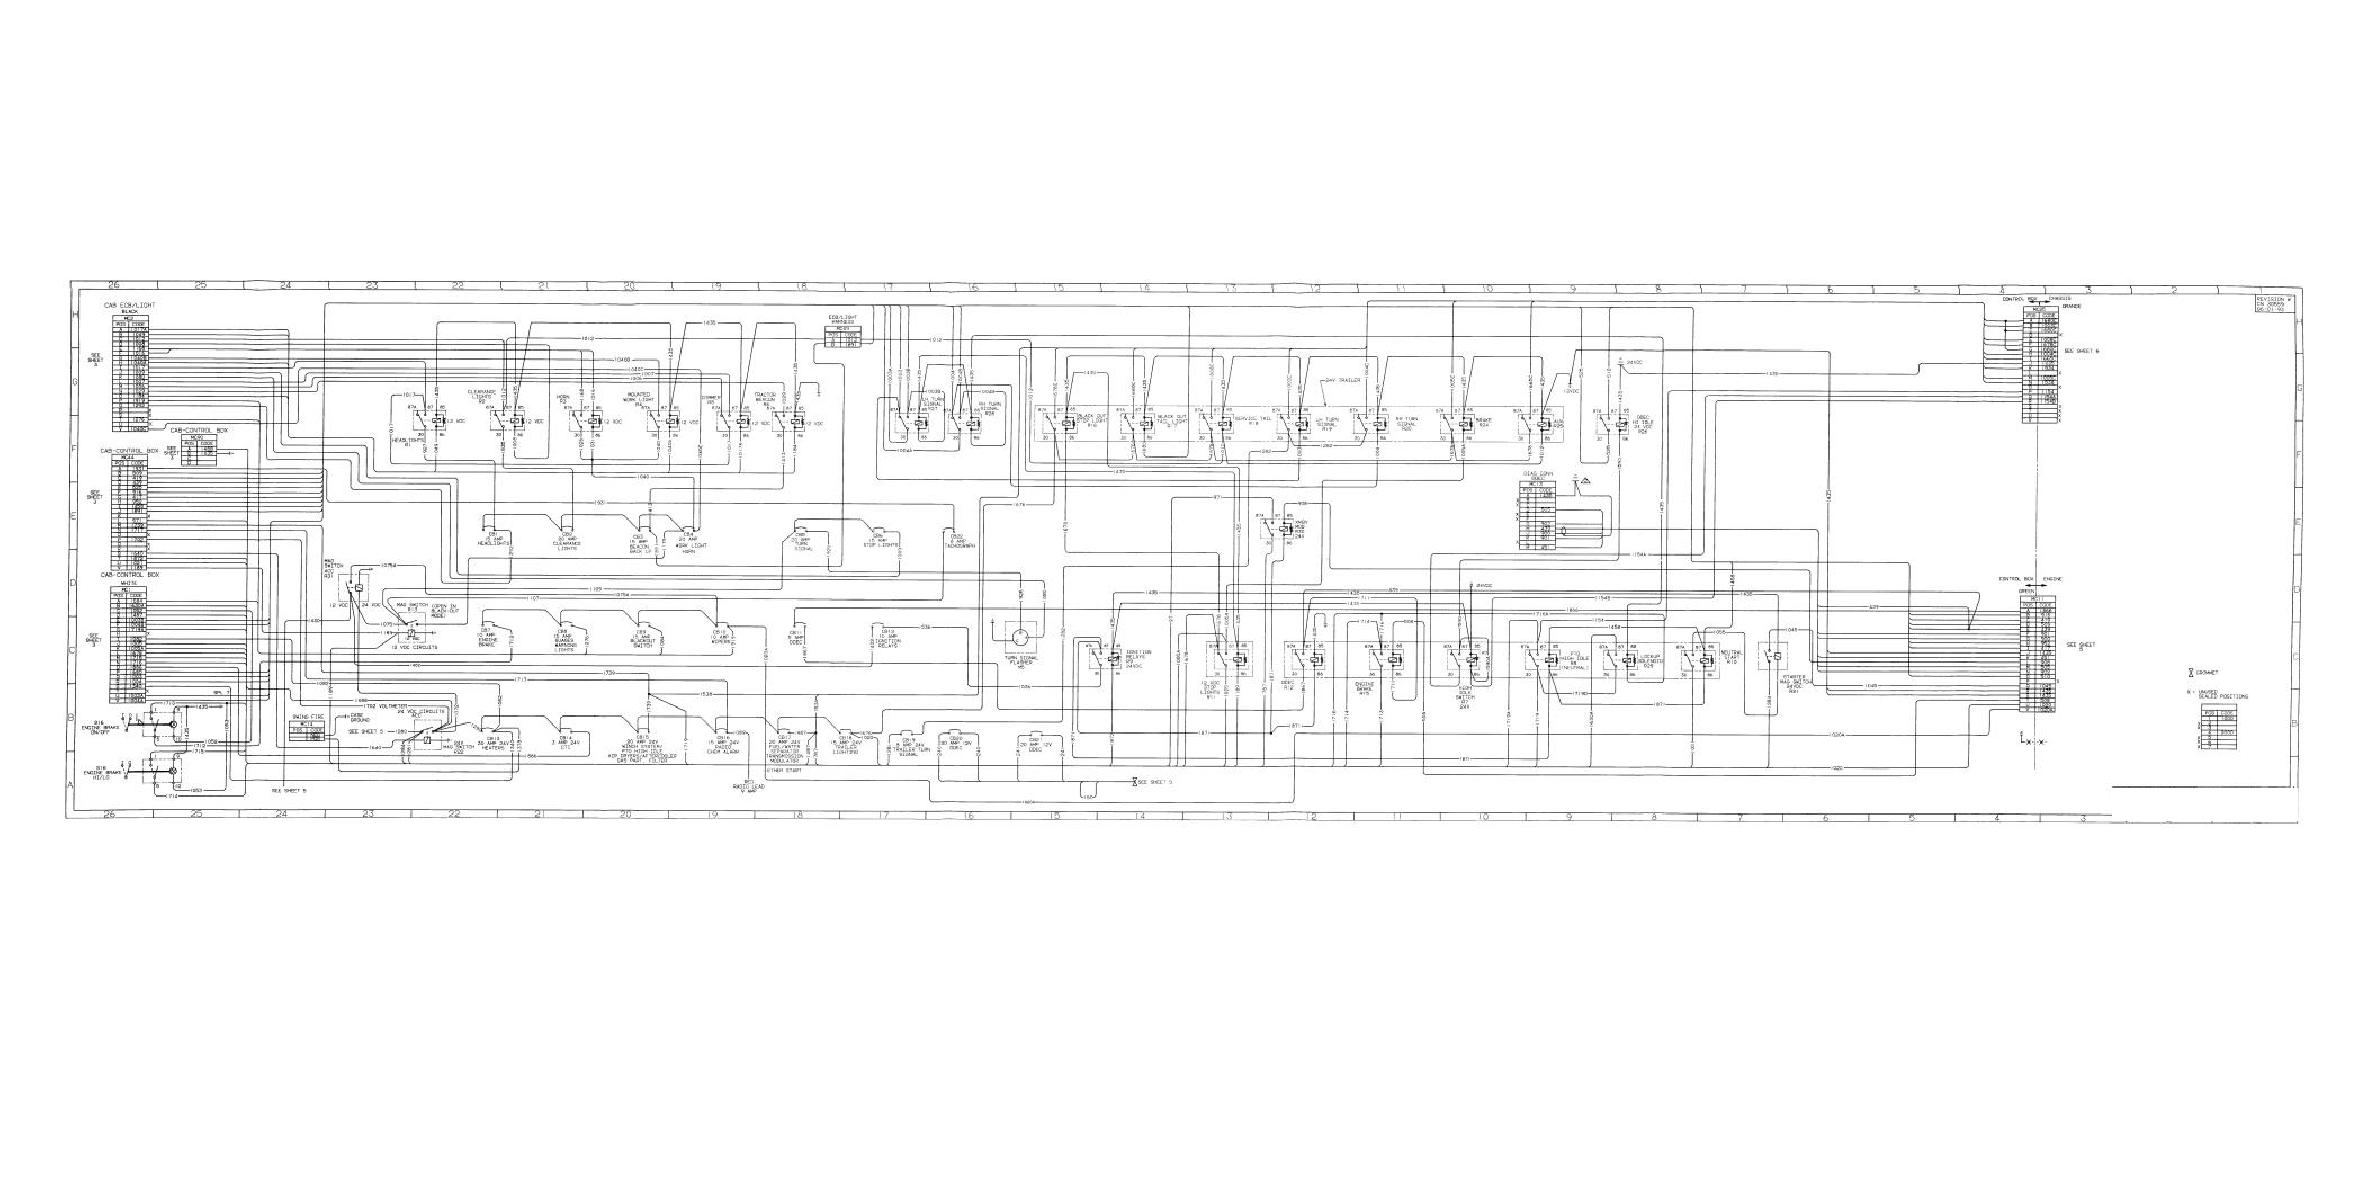 FIGURE FO-1. ELECTRICAL SYSTEM SCHEMATIC FOLDOUT 5 OF 11